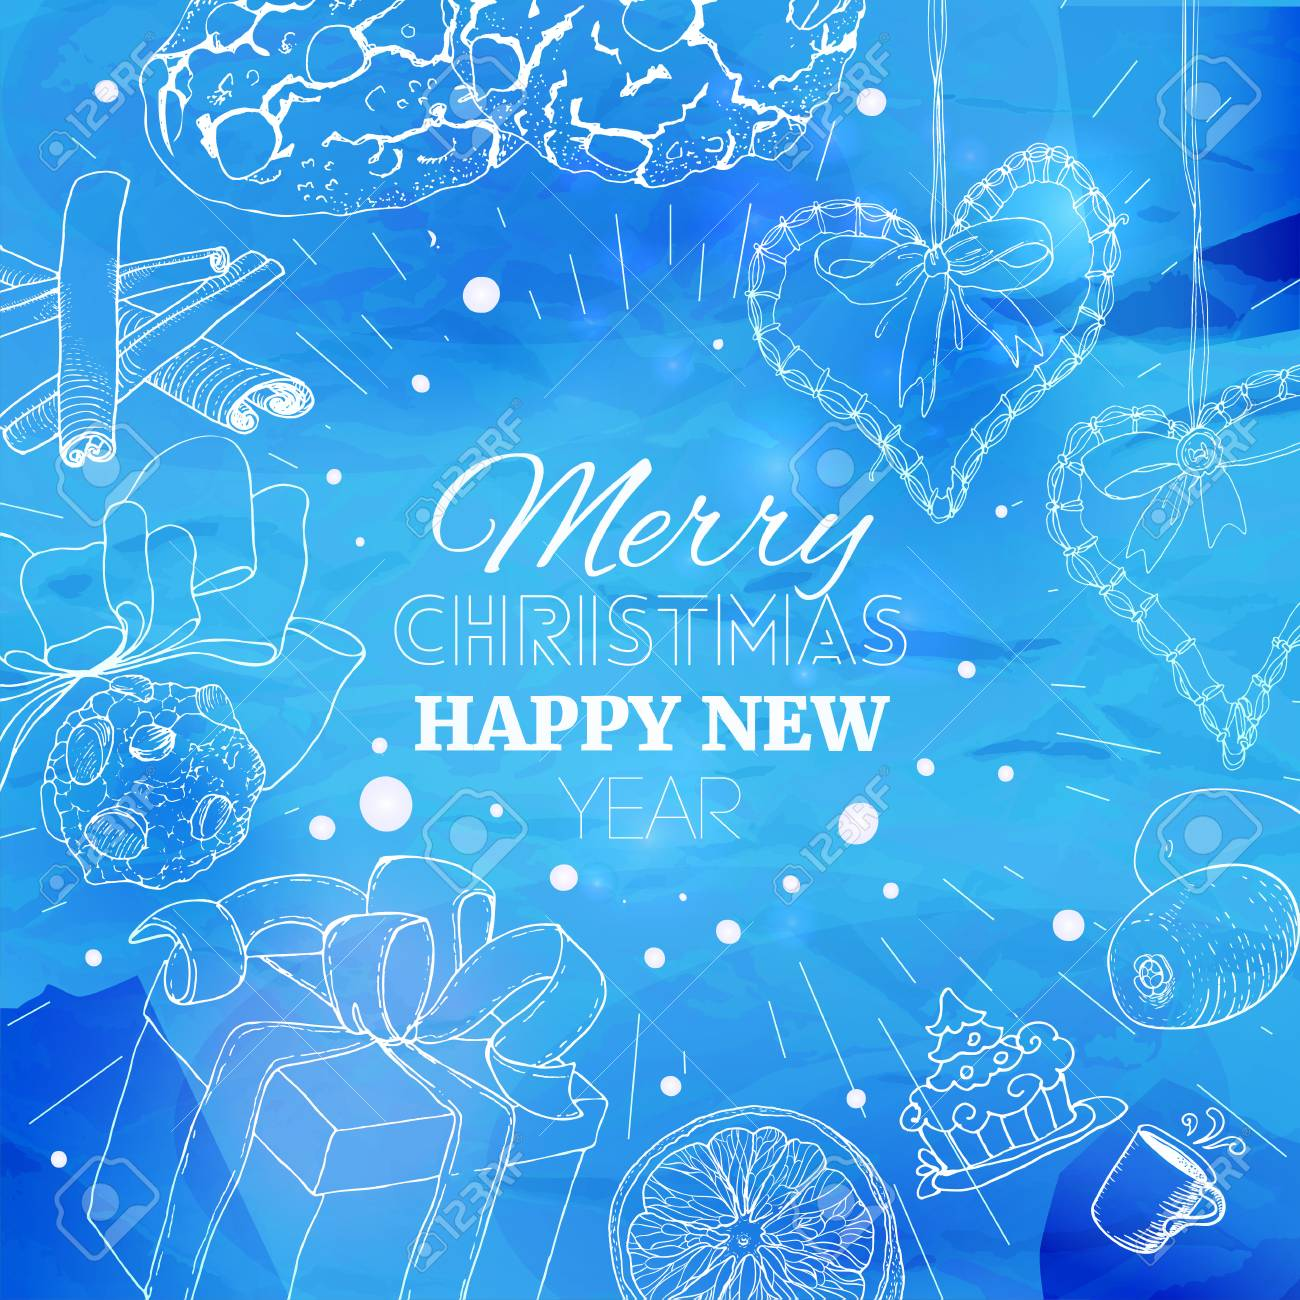 blue christmas card with linear sketch illustrations at old paper new year banner background